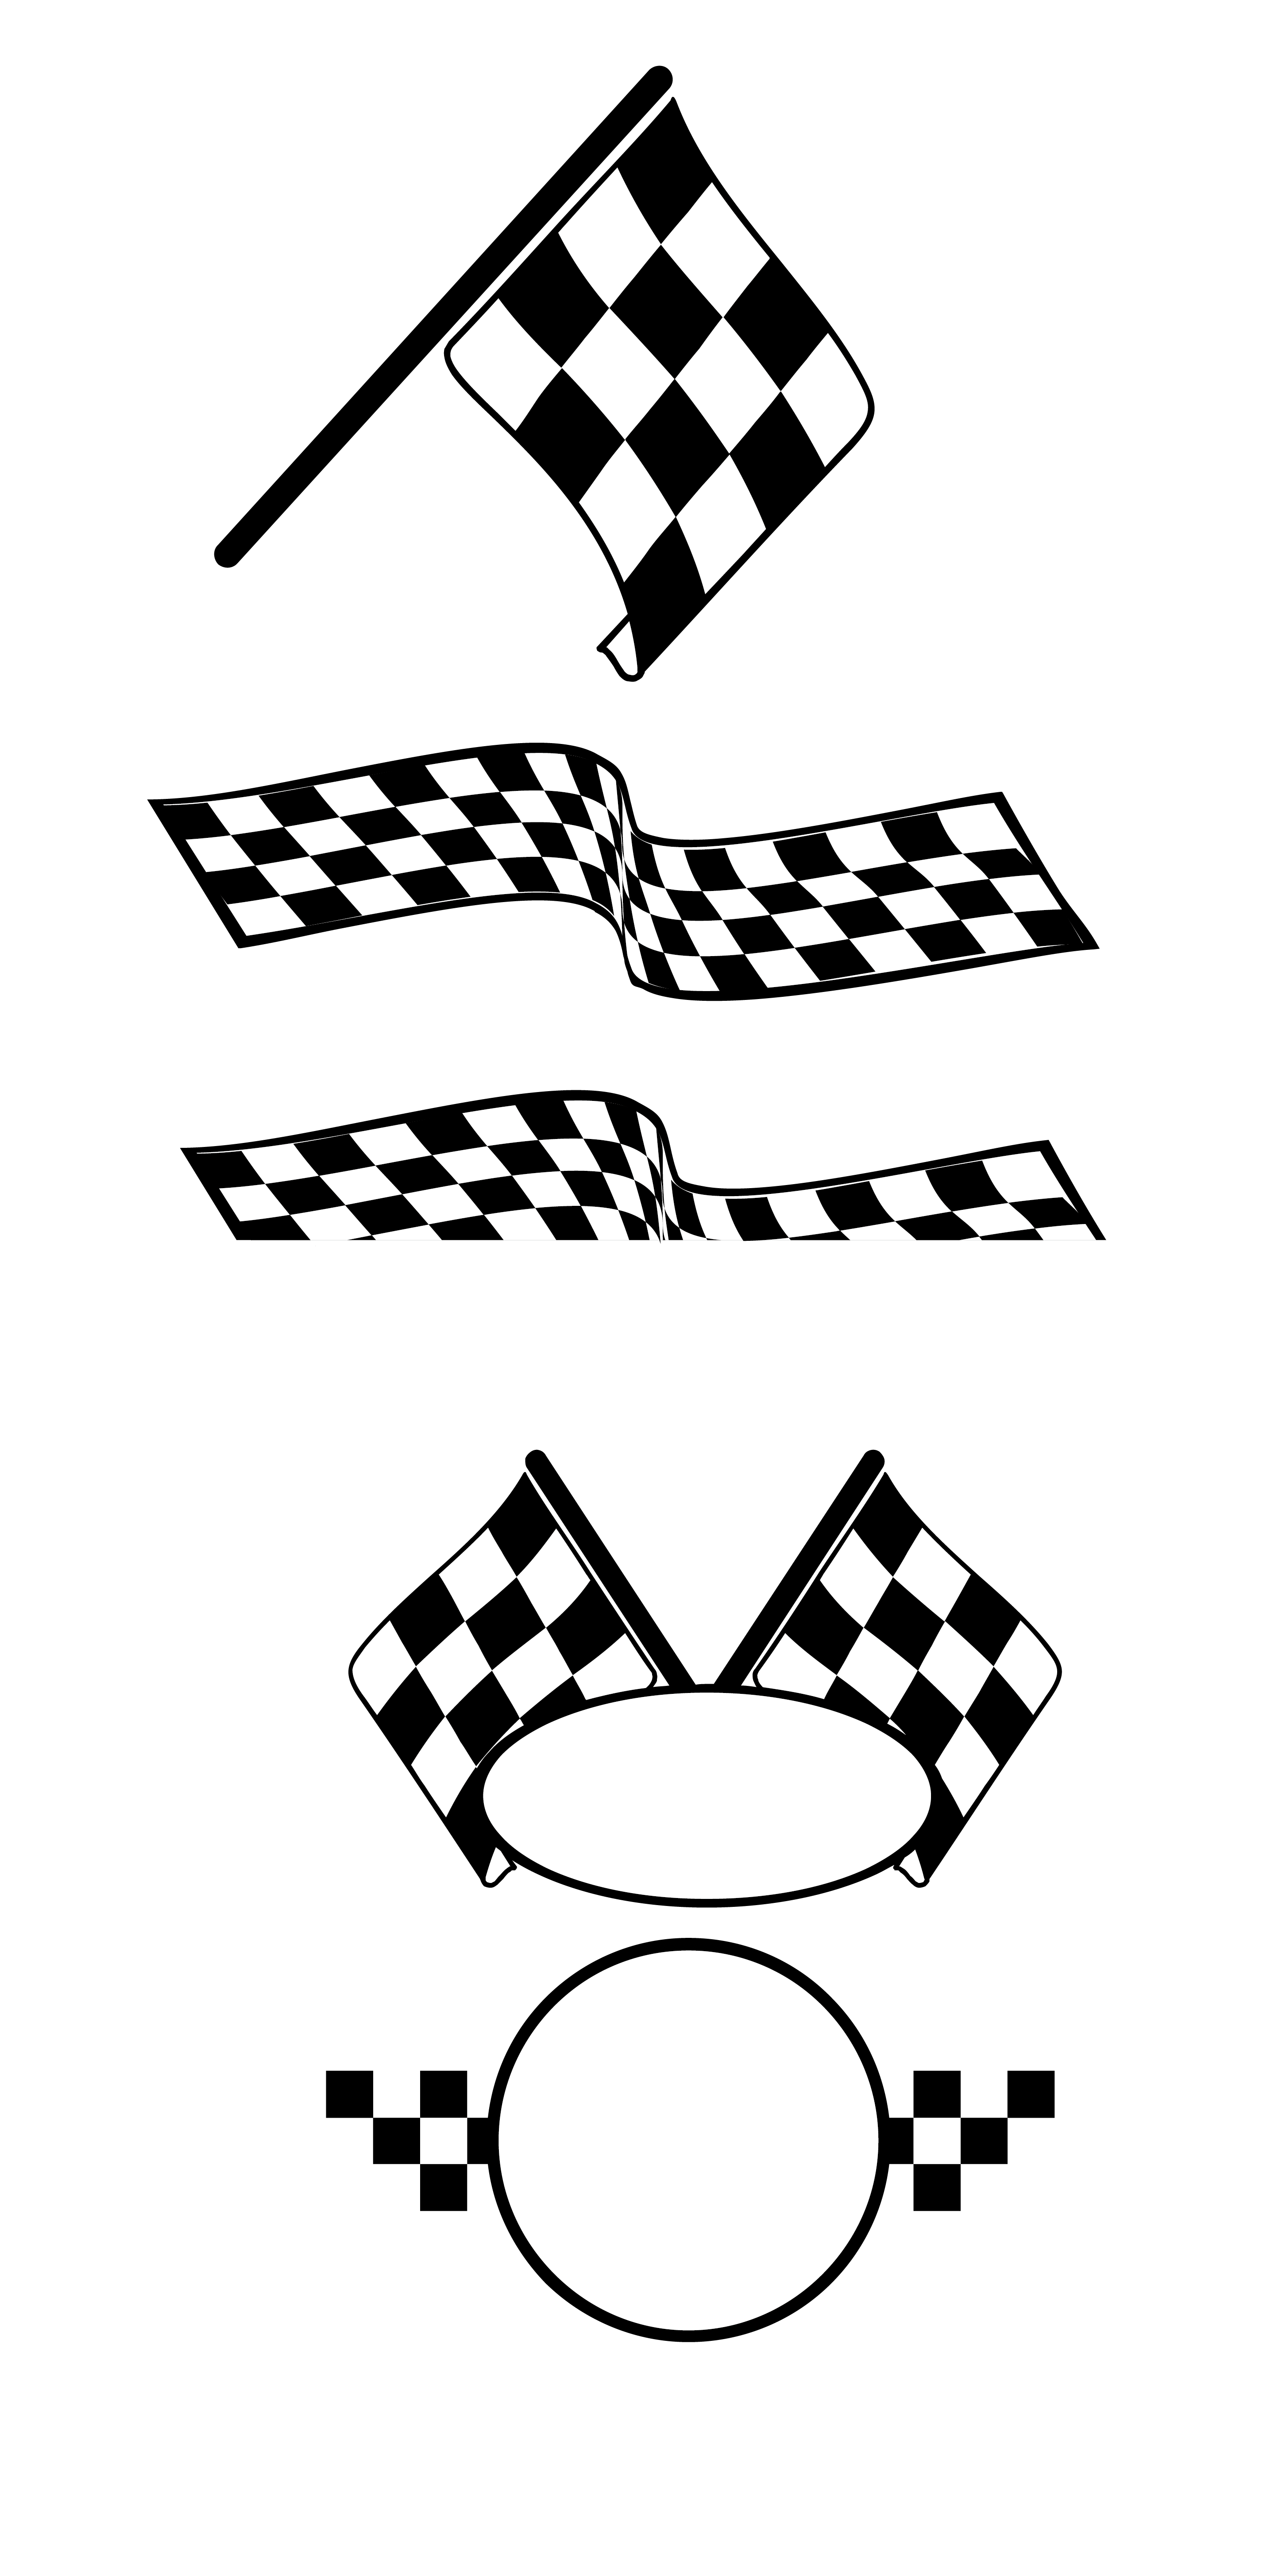 Car racing flags clipart graphic royalty free download Auto racing Racing flags - Vector,Cartoon,pattern,Racing car,banner ... graphic royalty free download